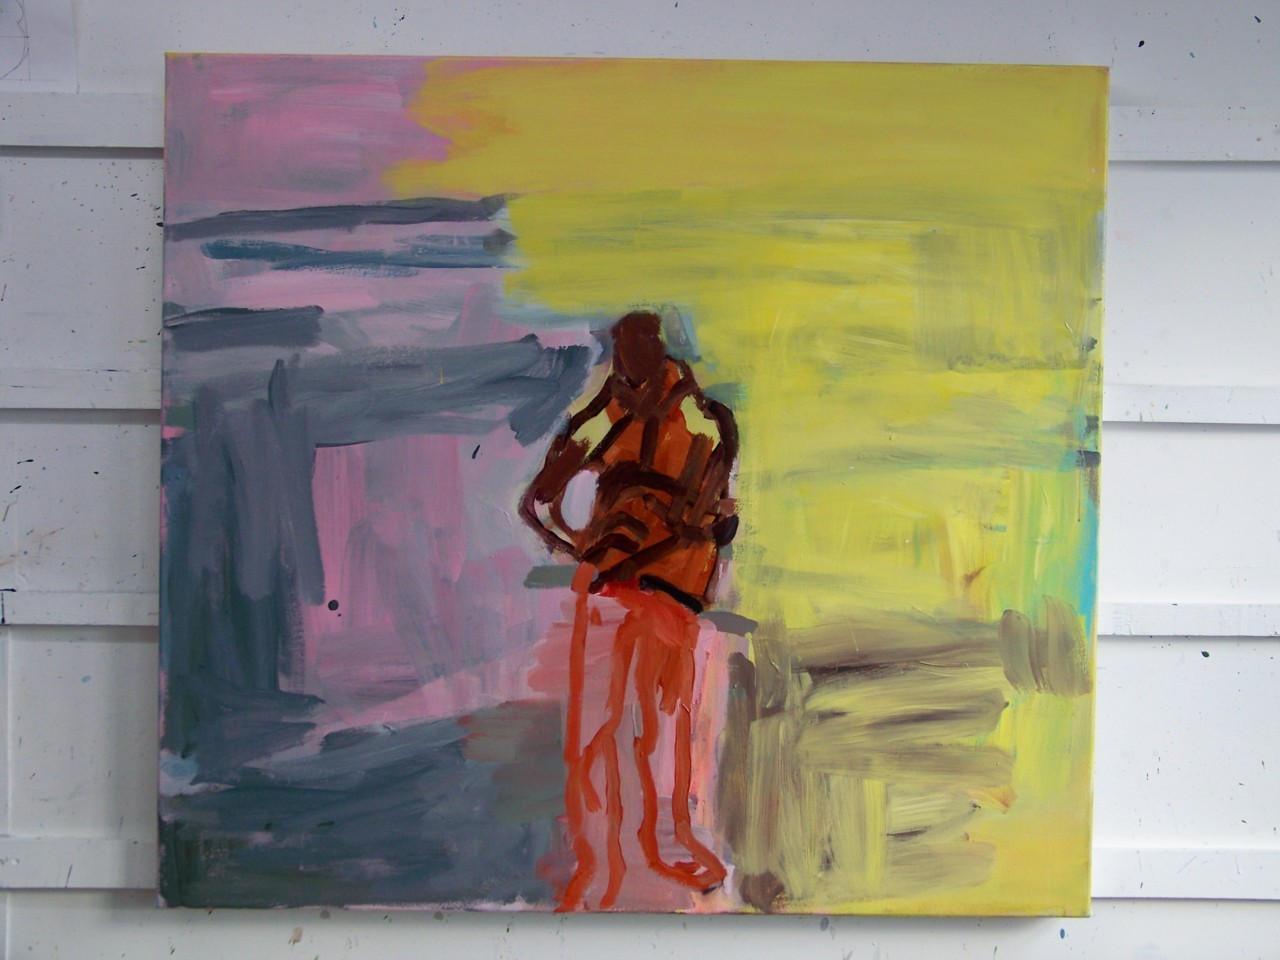 23rd January 2012. More work on this painting today. I might leave it for a while now before doing anything else.